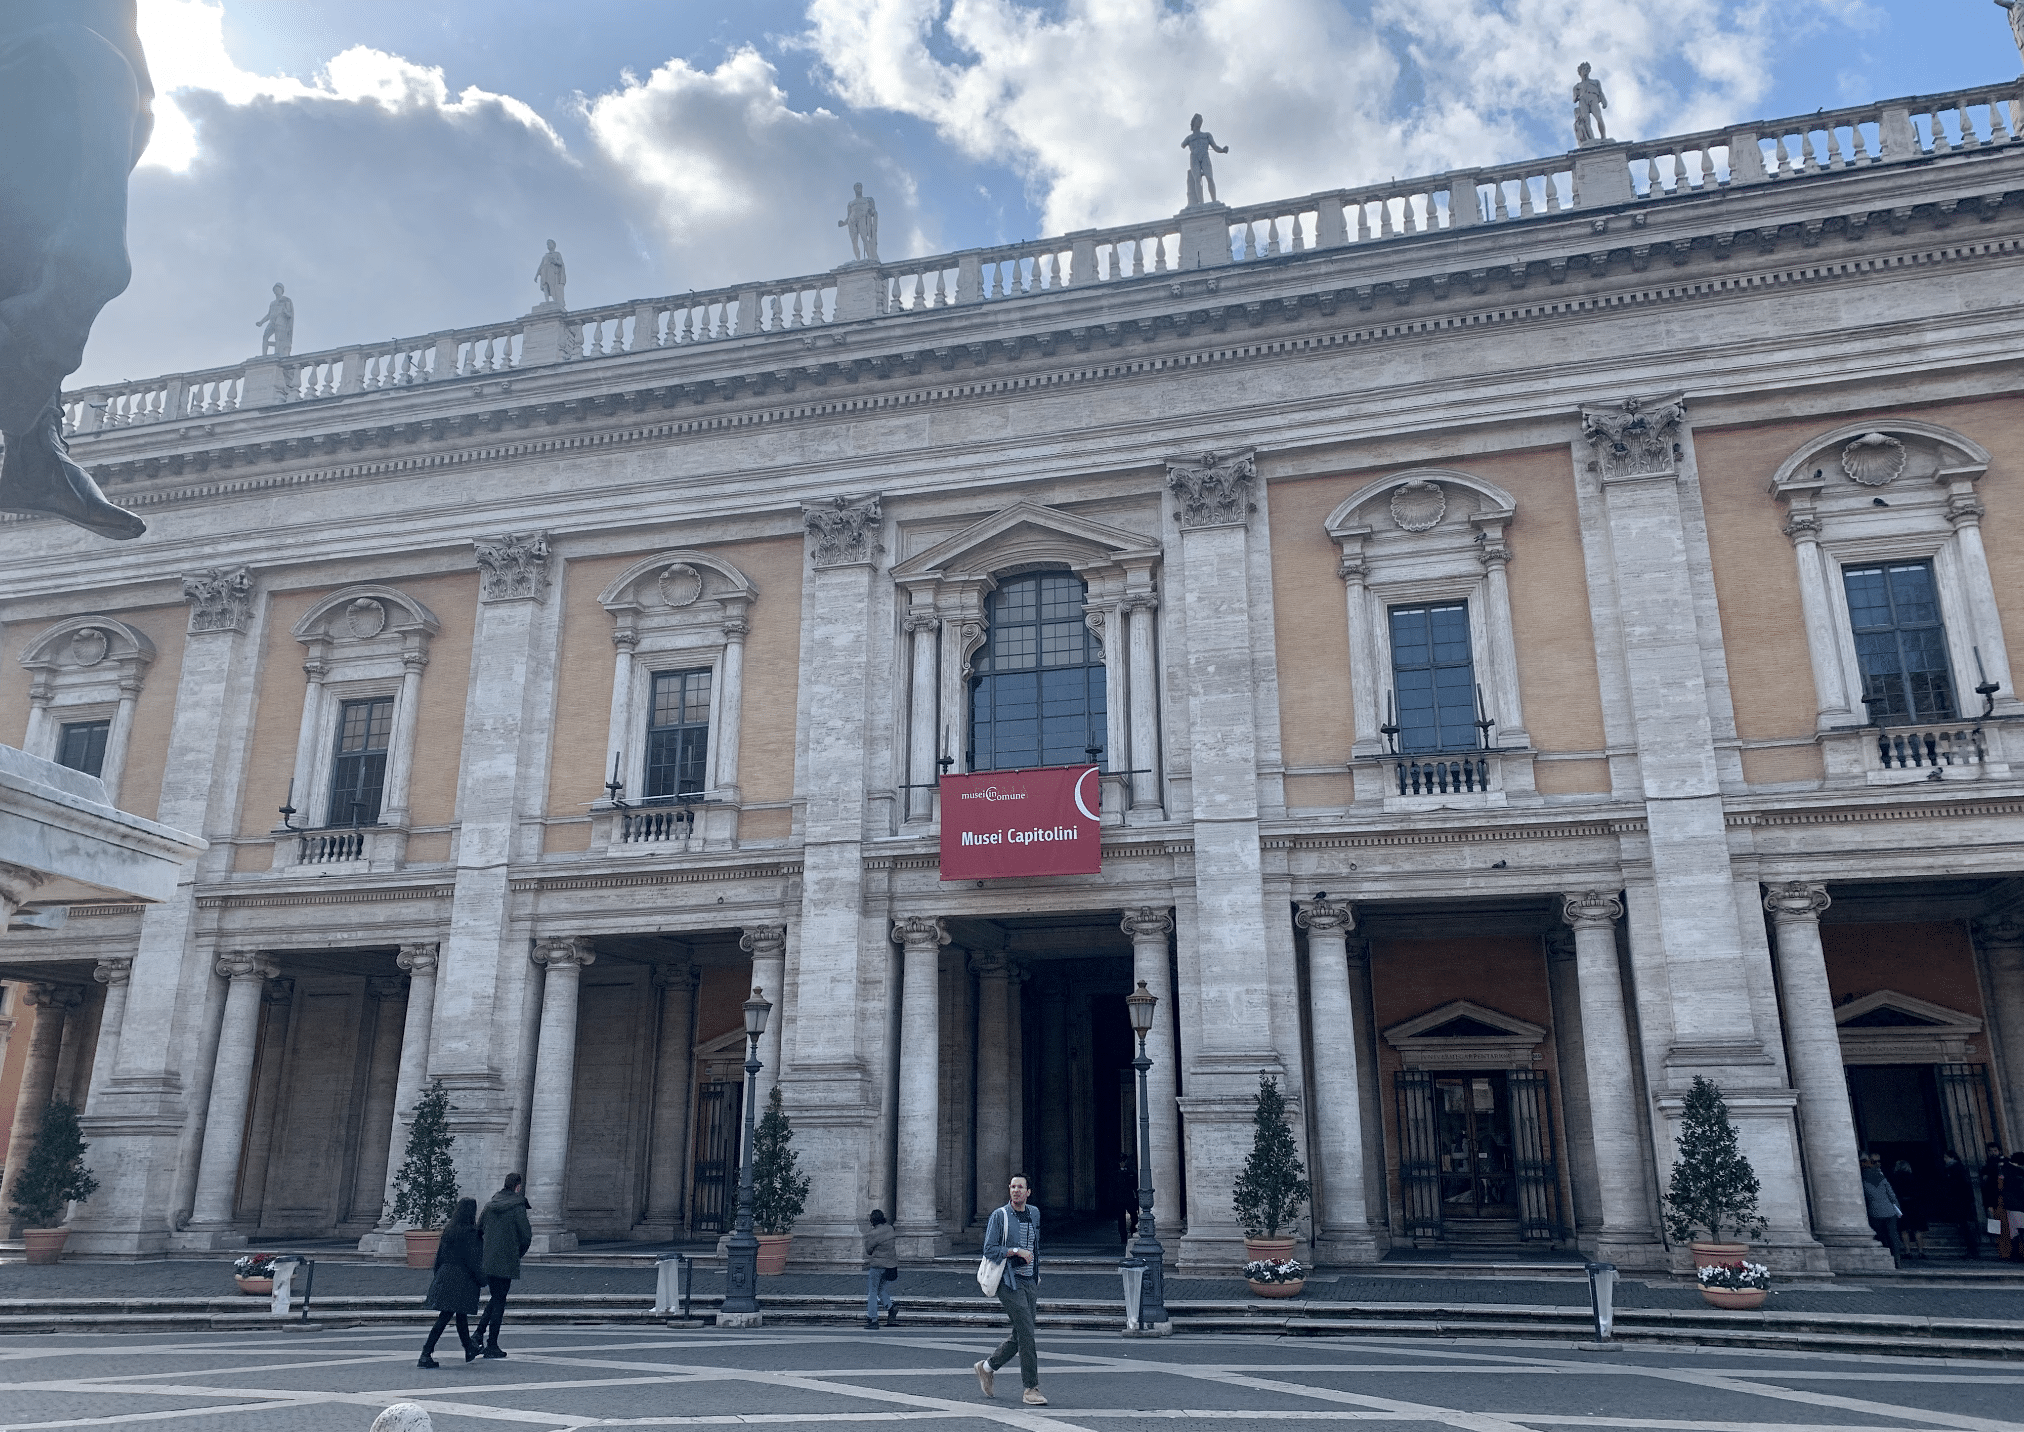 les musees capitolins a rome